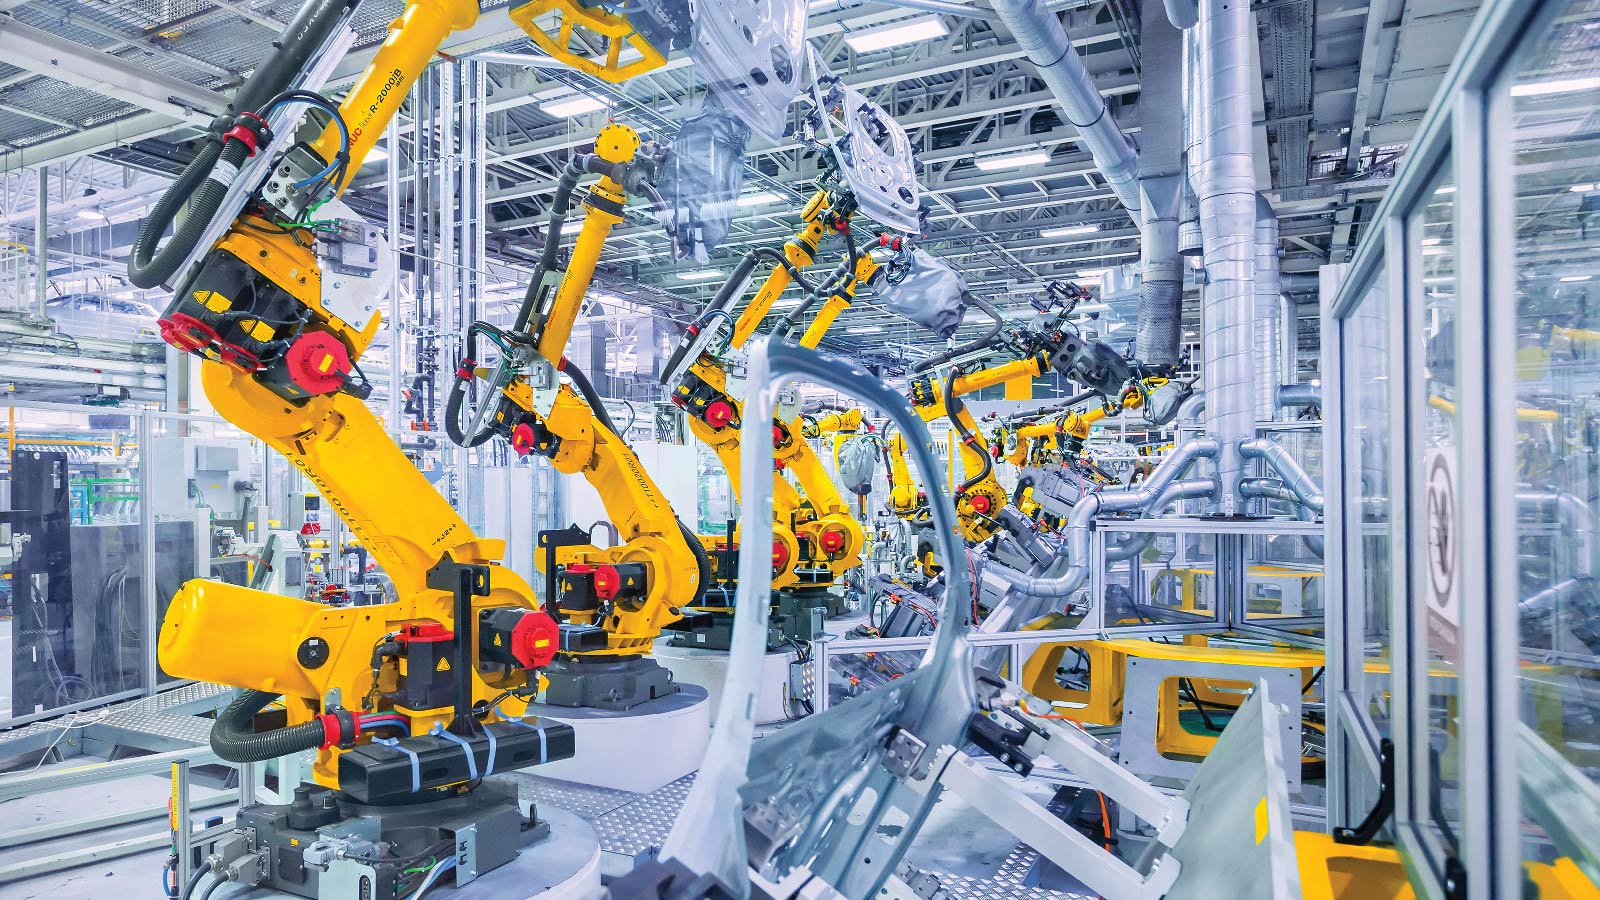 Industrial Automation – Micro-factories Swiftly Move to Automation for More Resilient Manufacturing